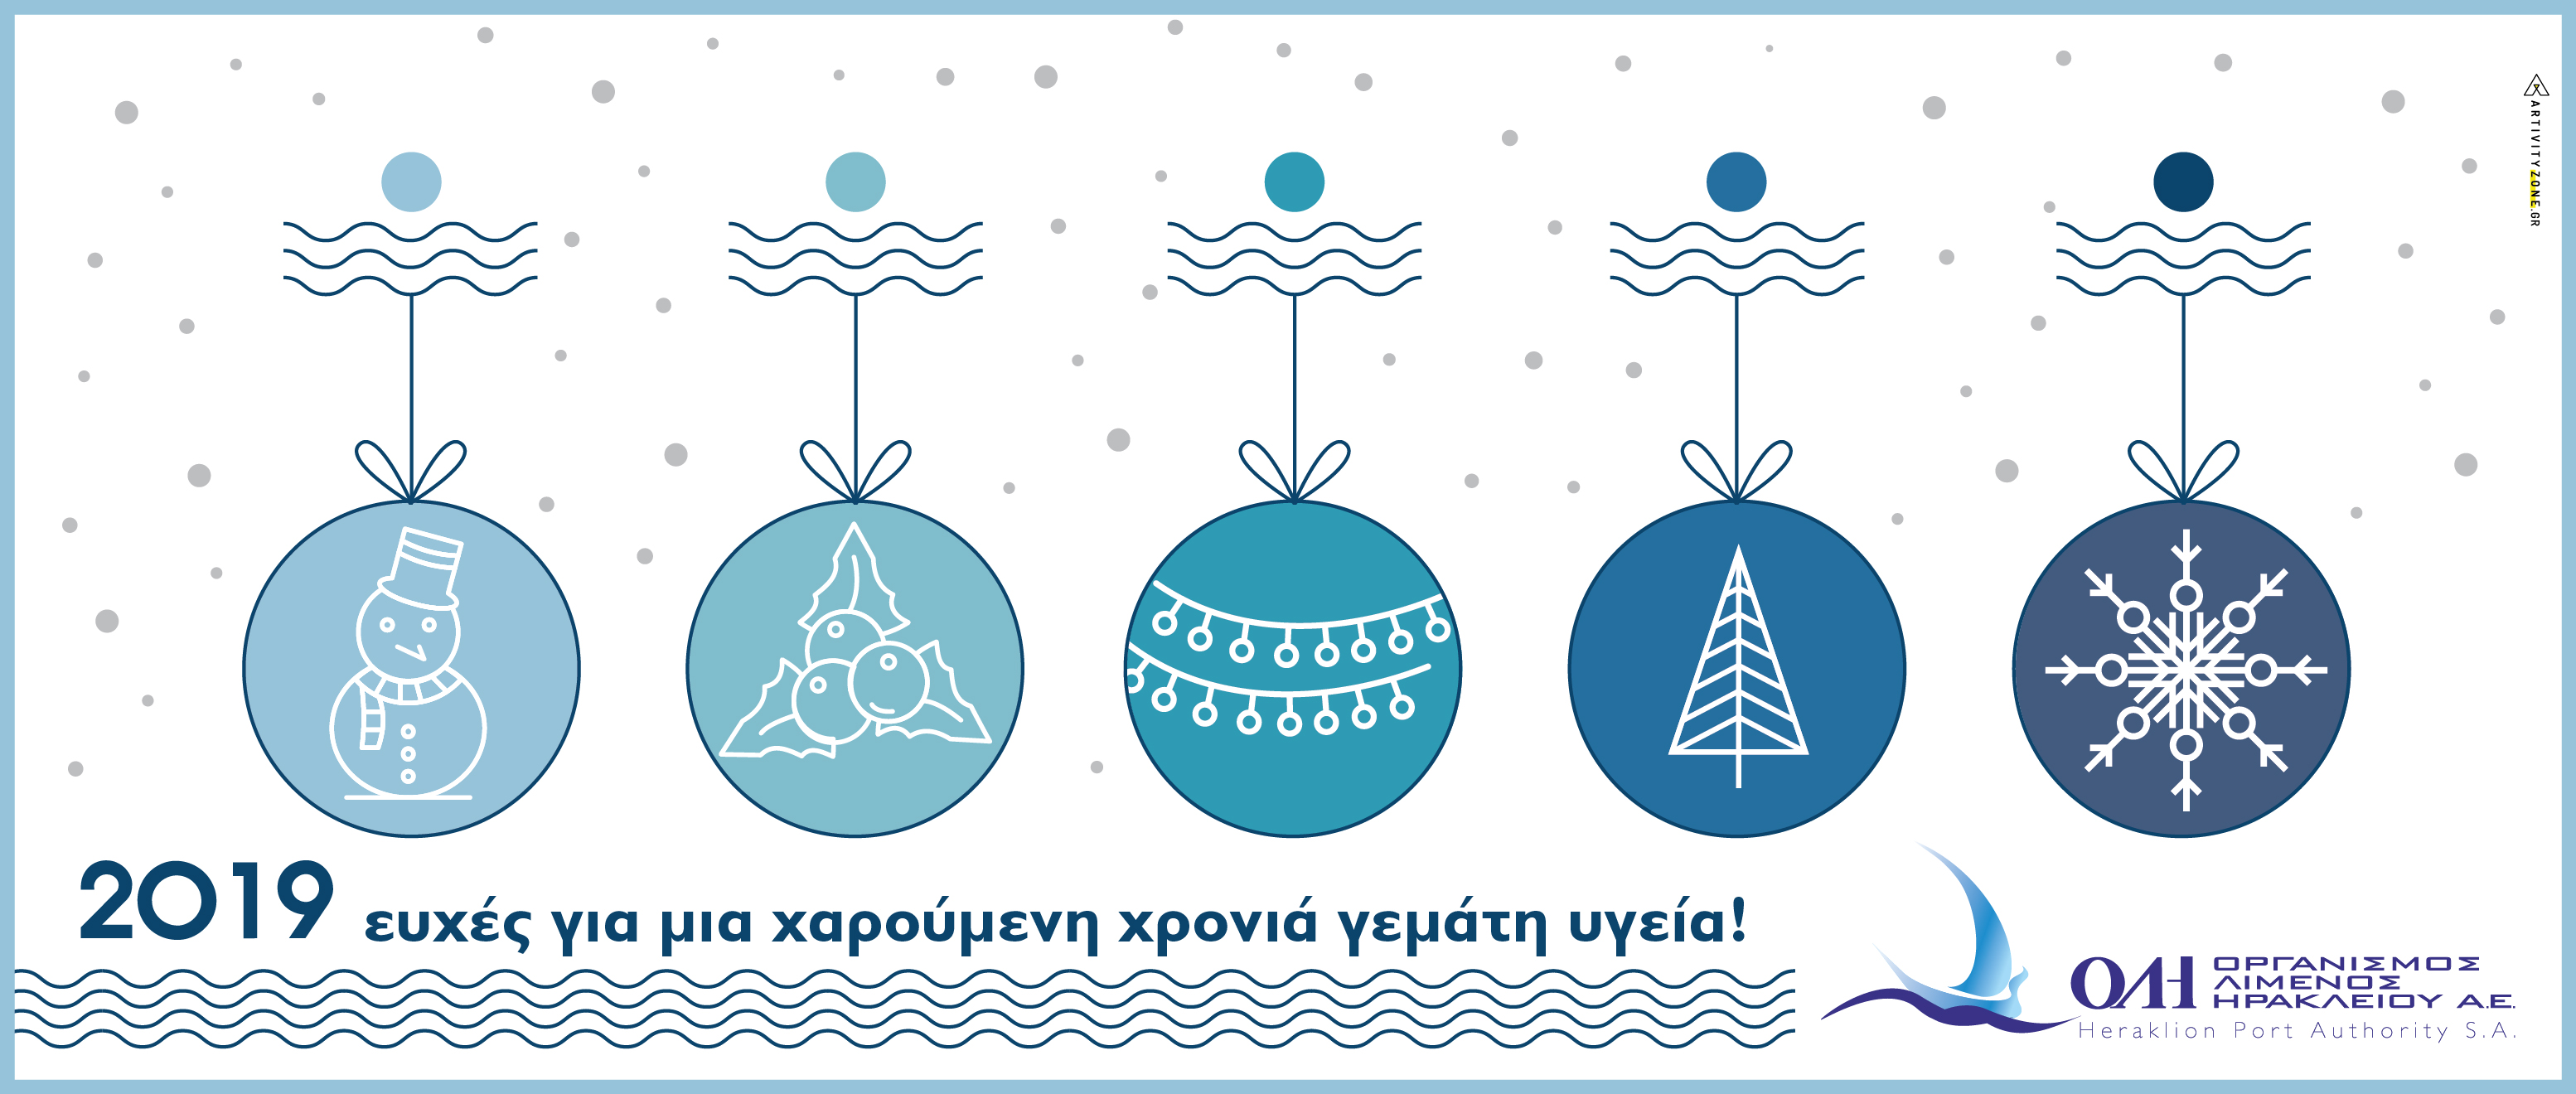 Christmas greetings from the Heraklion Port Authority